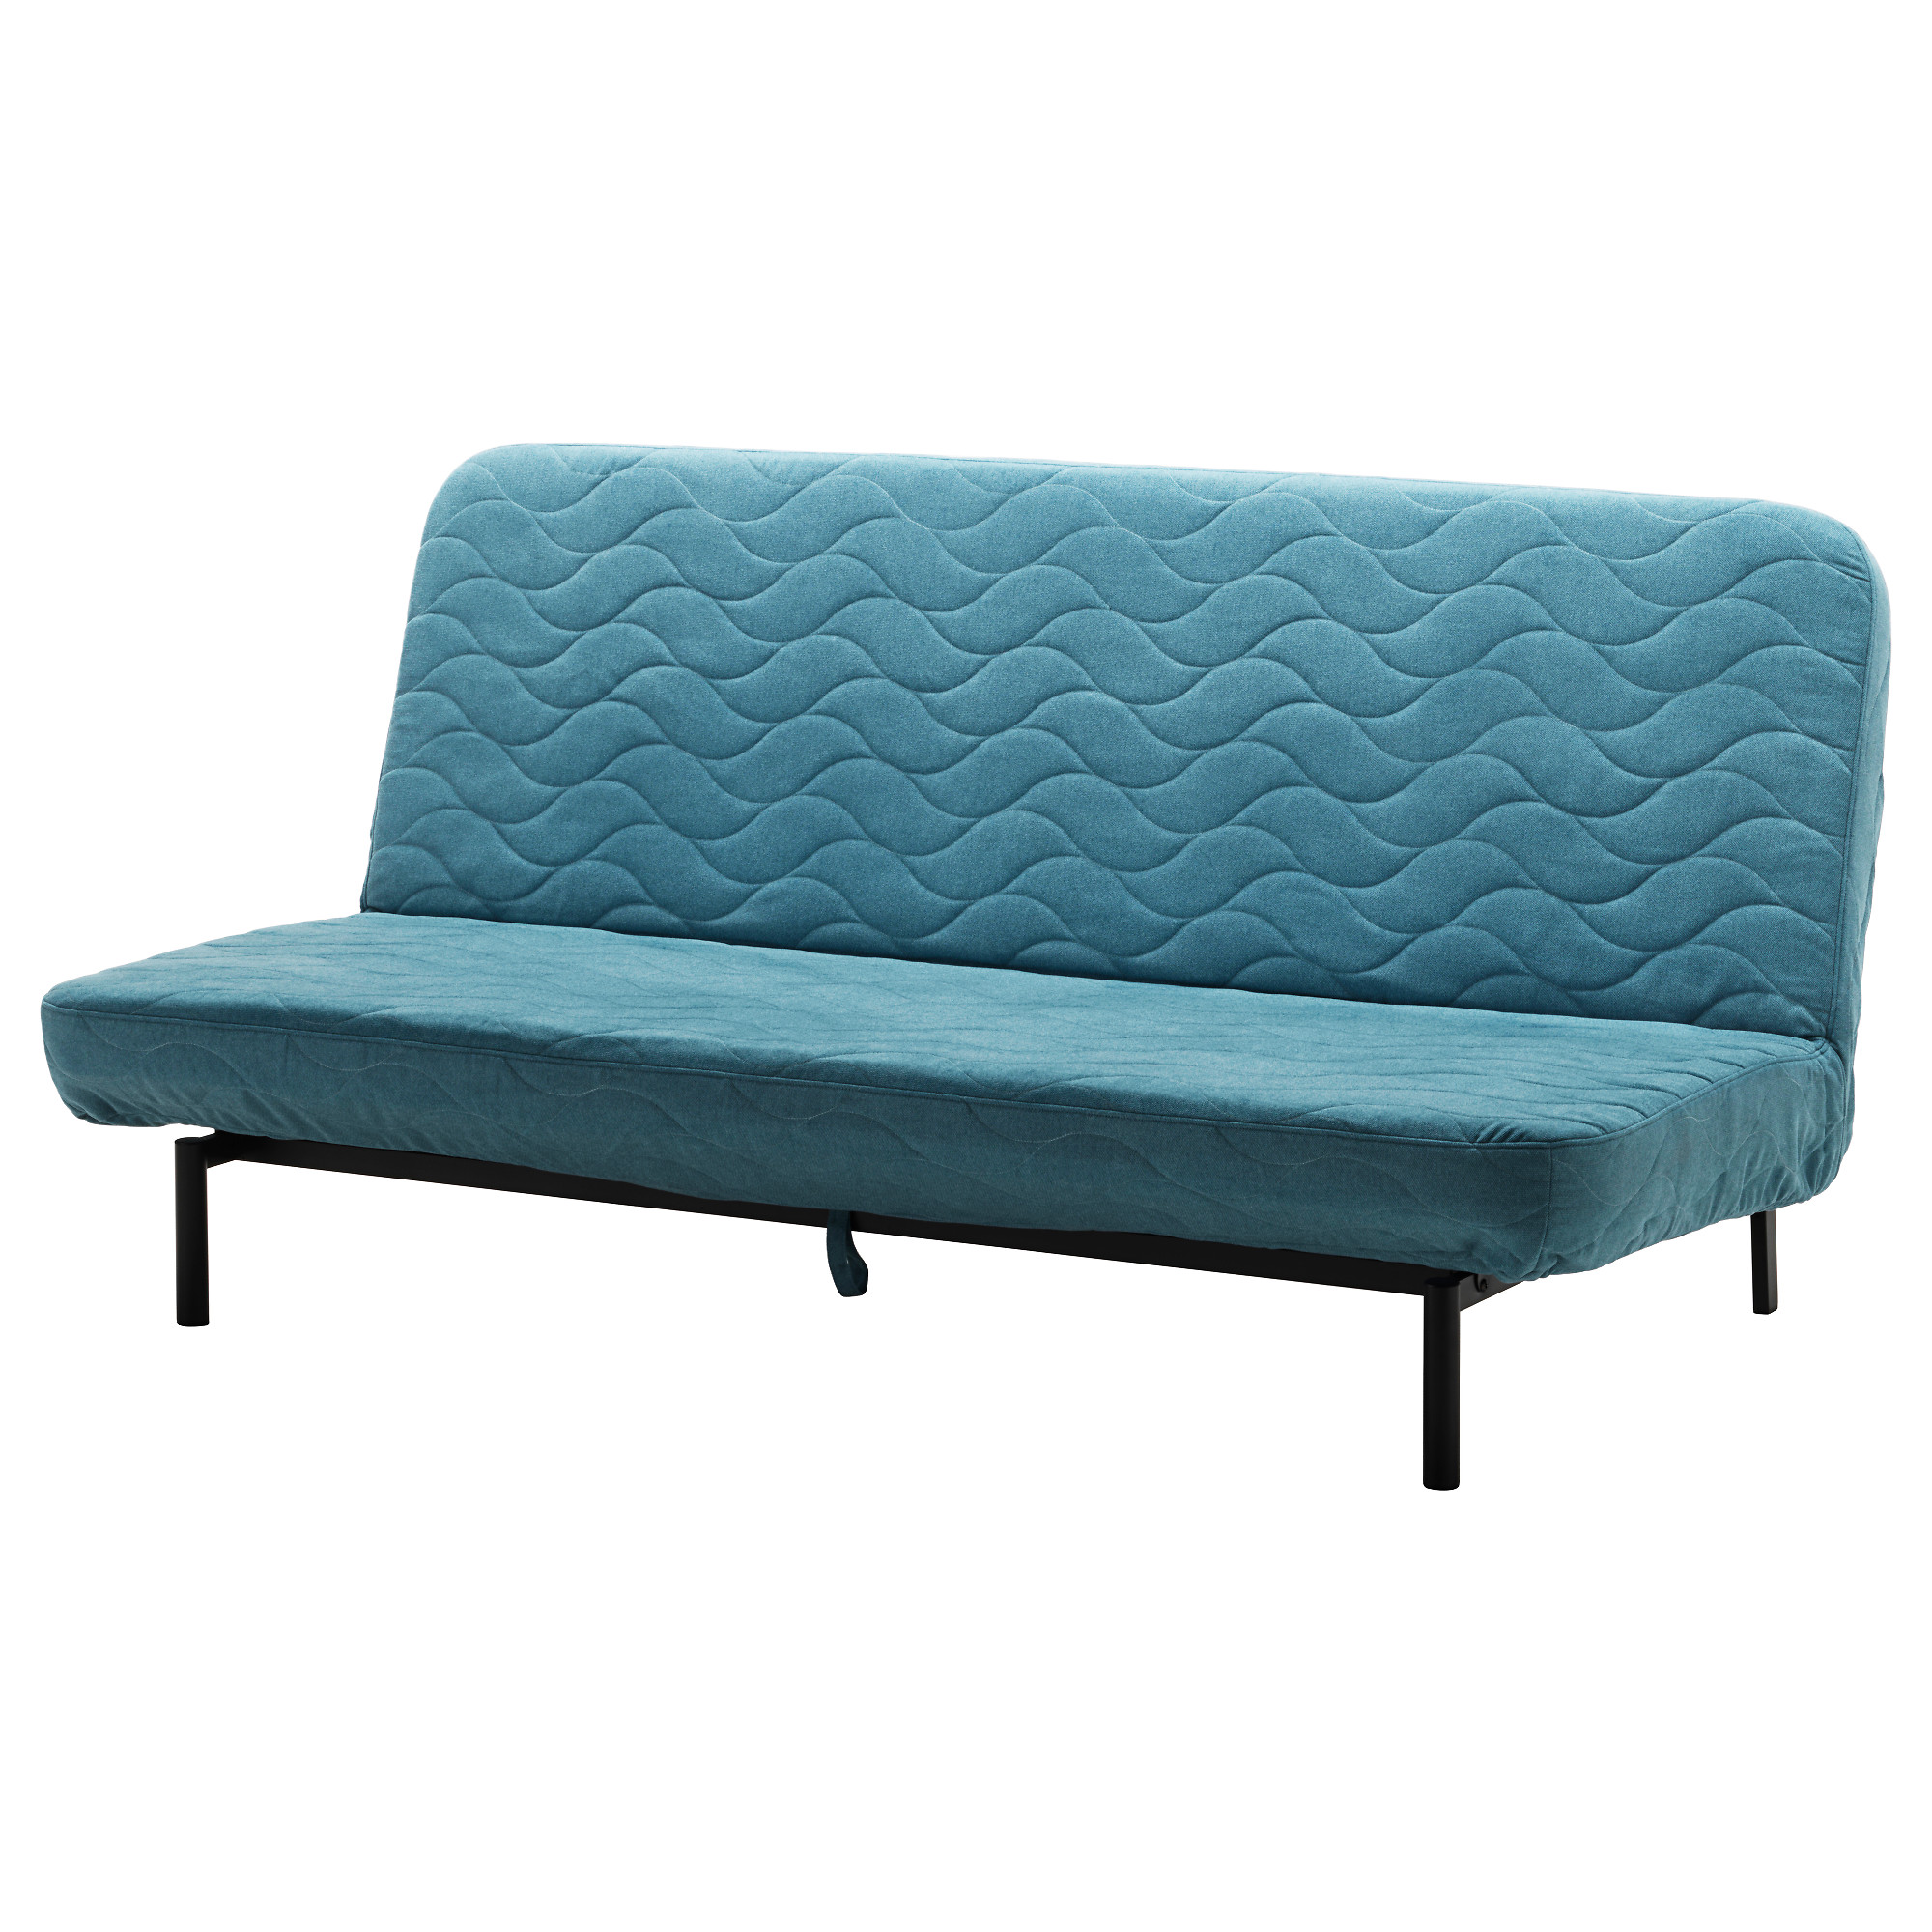 futon sofa beds nyhamn sleeper sofa, with foam mattress, borred green/blue width: 78 3 QQAPNQD